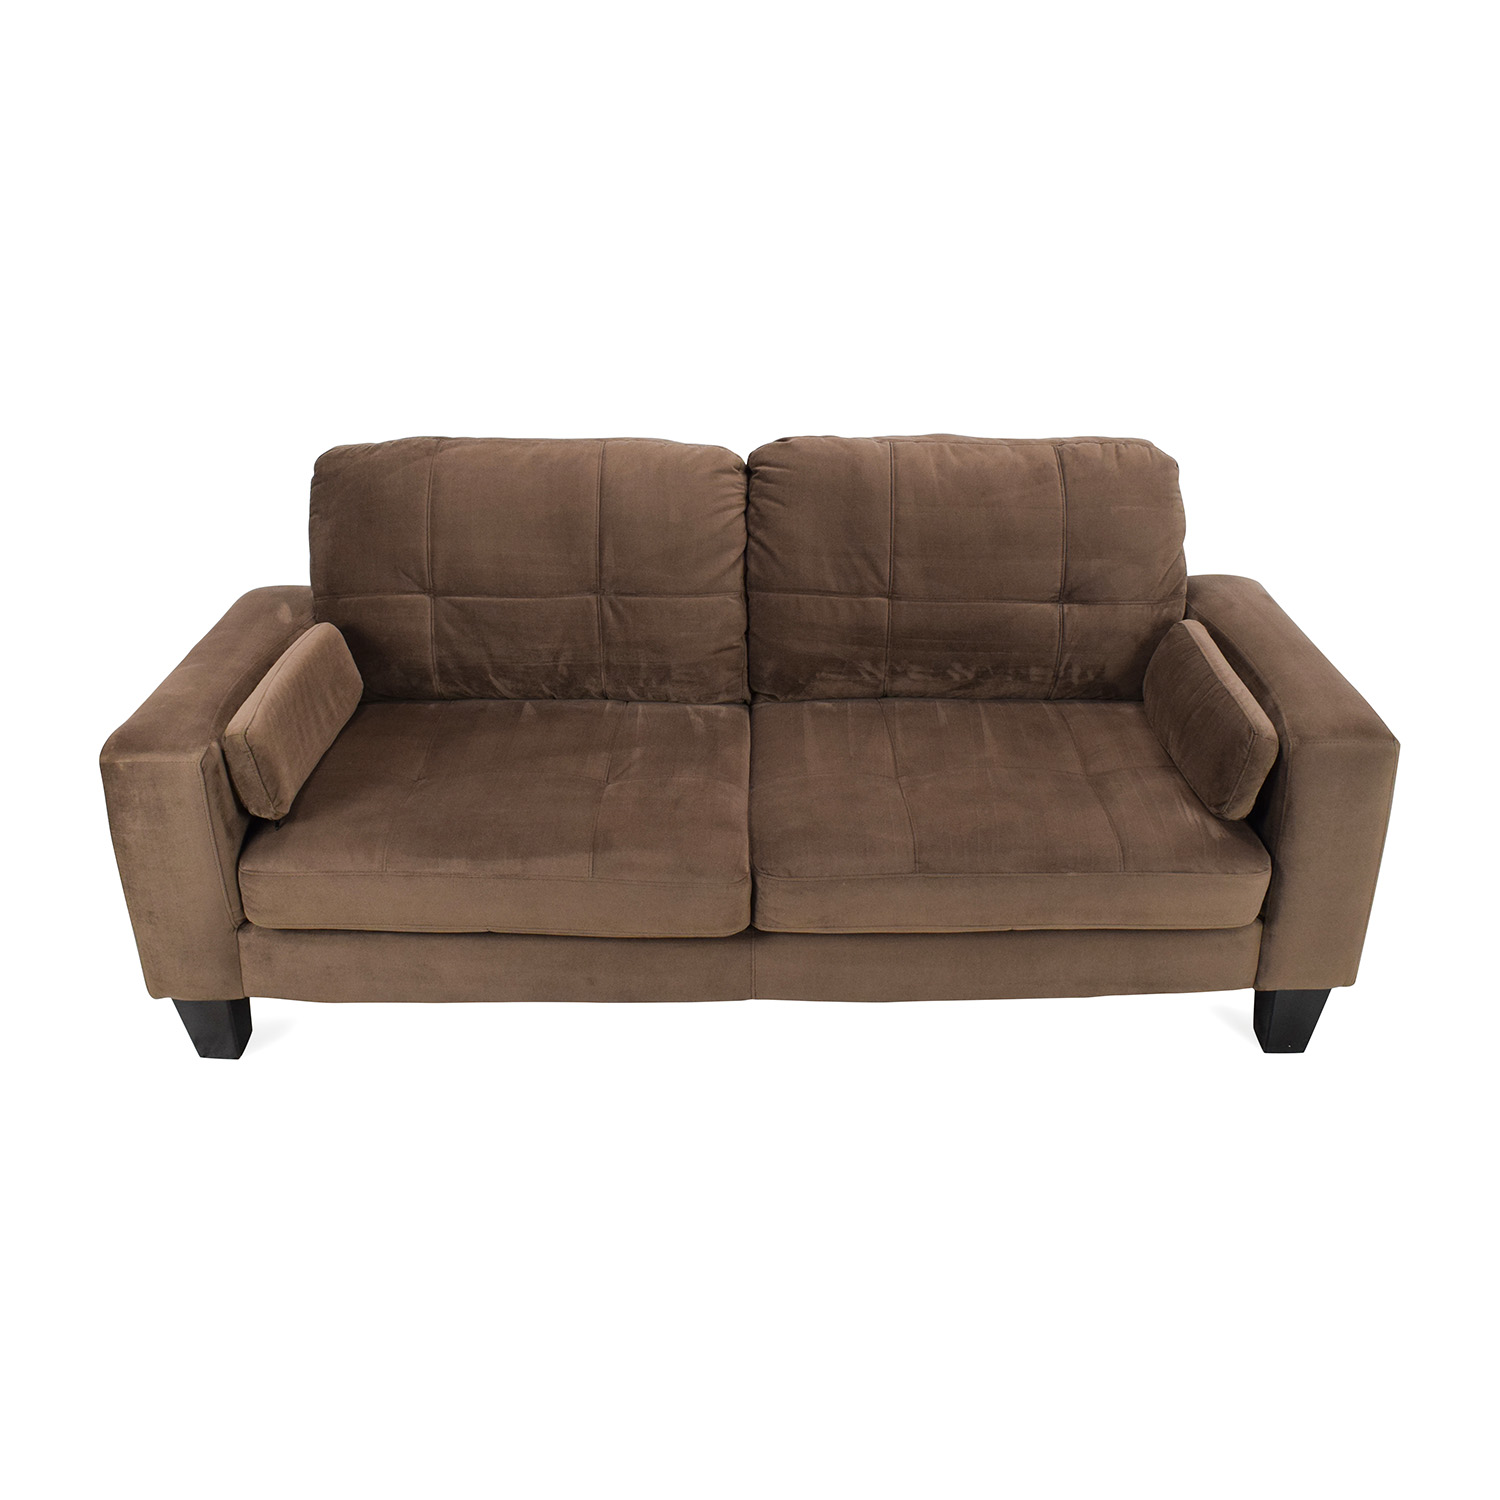 Jennifer Convertibles Jennifer Convertibles Sofa on sale